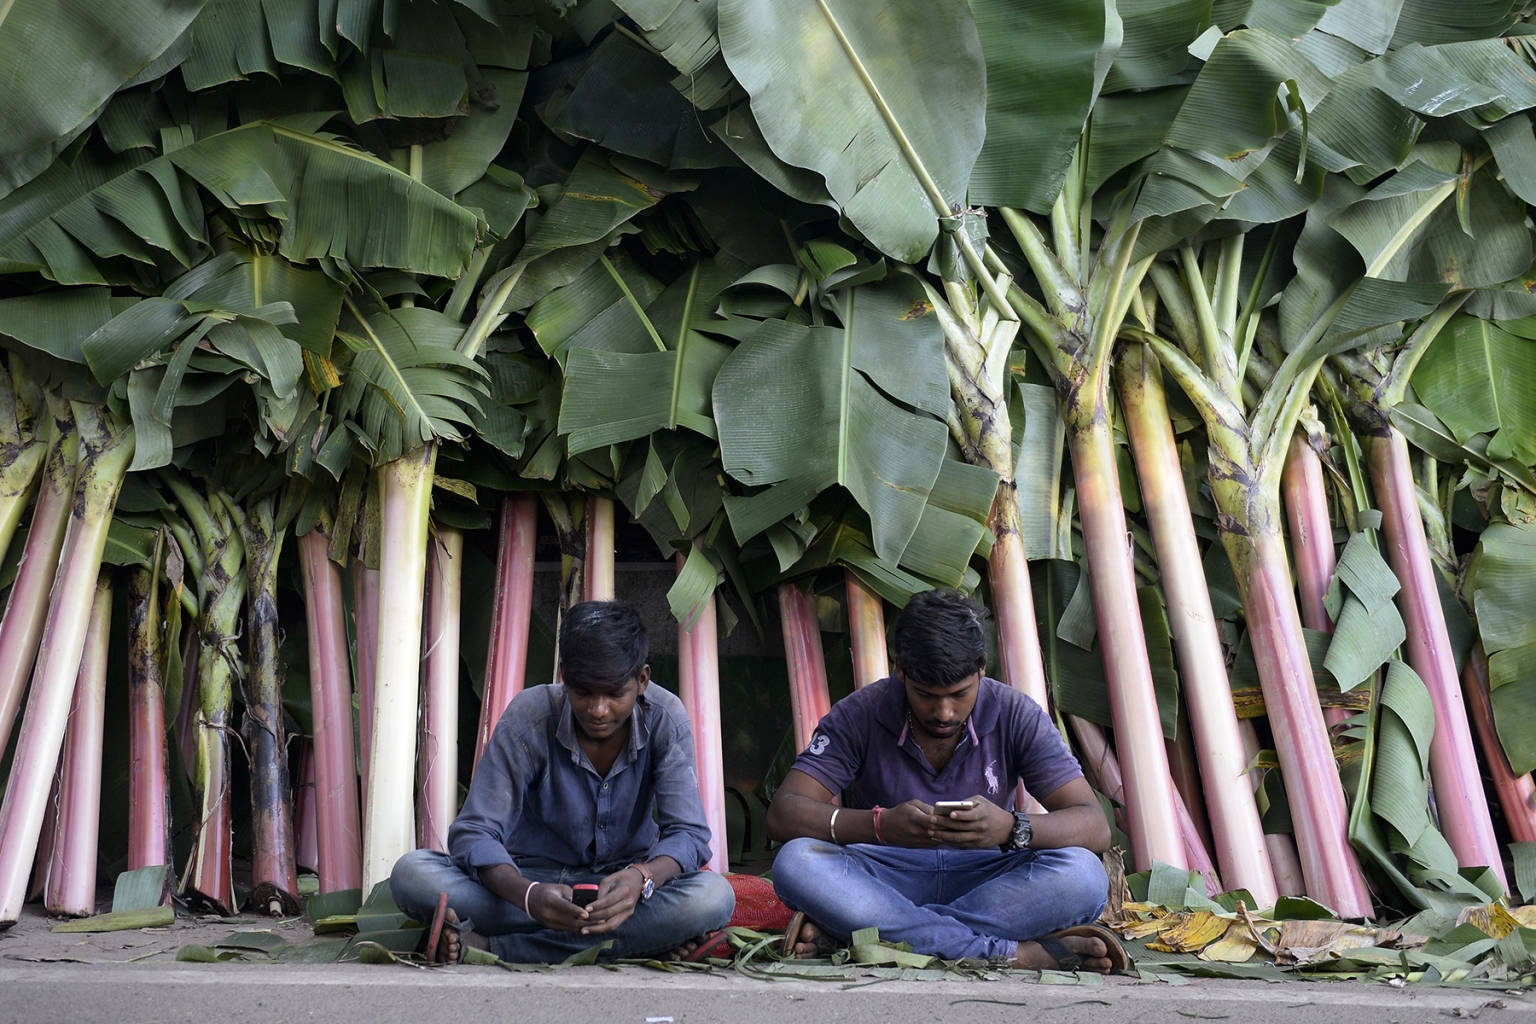 Vendors look at their phones at a market for banana leaves during Diwali in Hyderabad, India, on Nov. 7. People decorate the entrance of their homes and business centers with banana leaves during the Hindu festival of lights. NOAH SEELAM/AFP/Getty Images